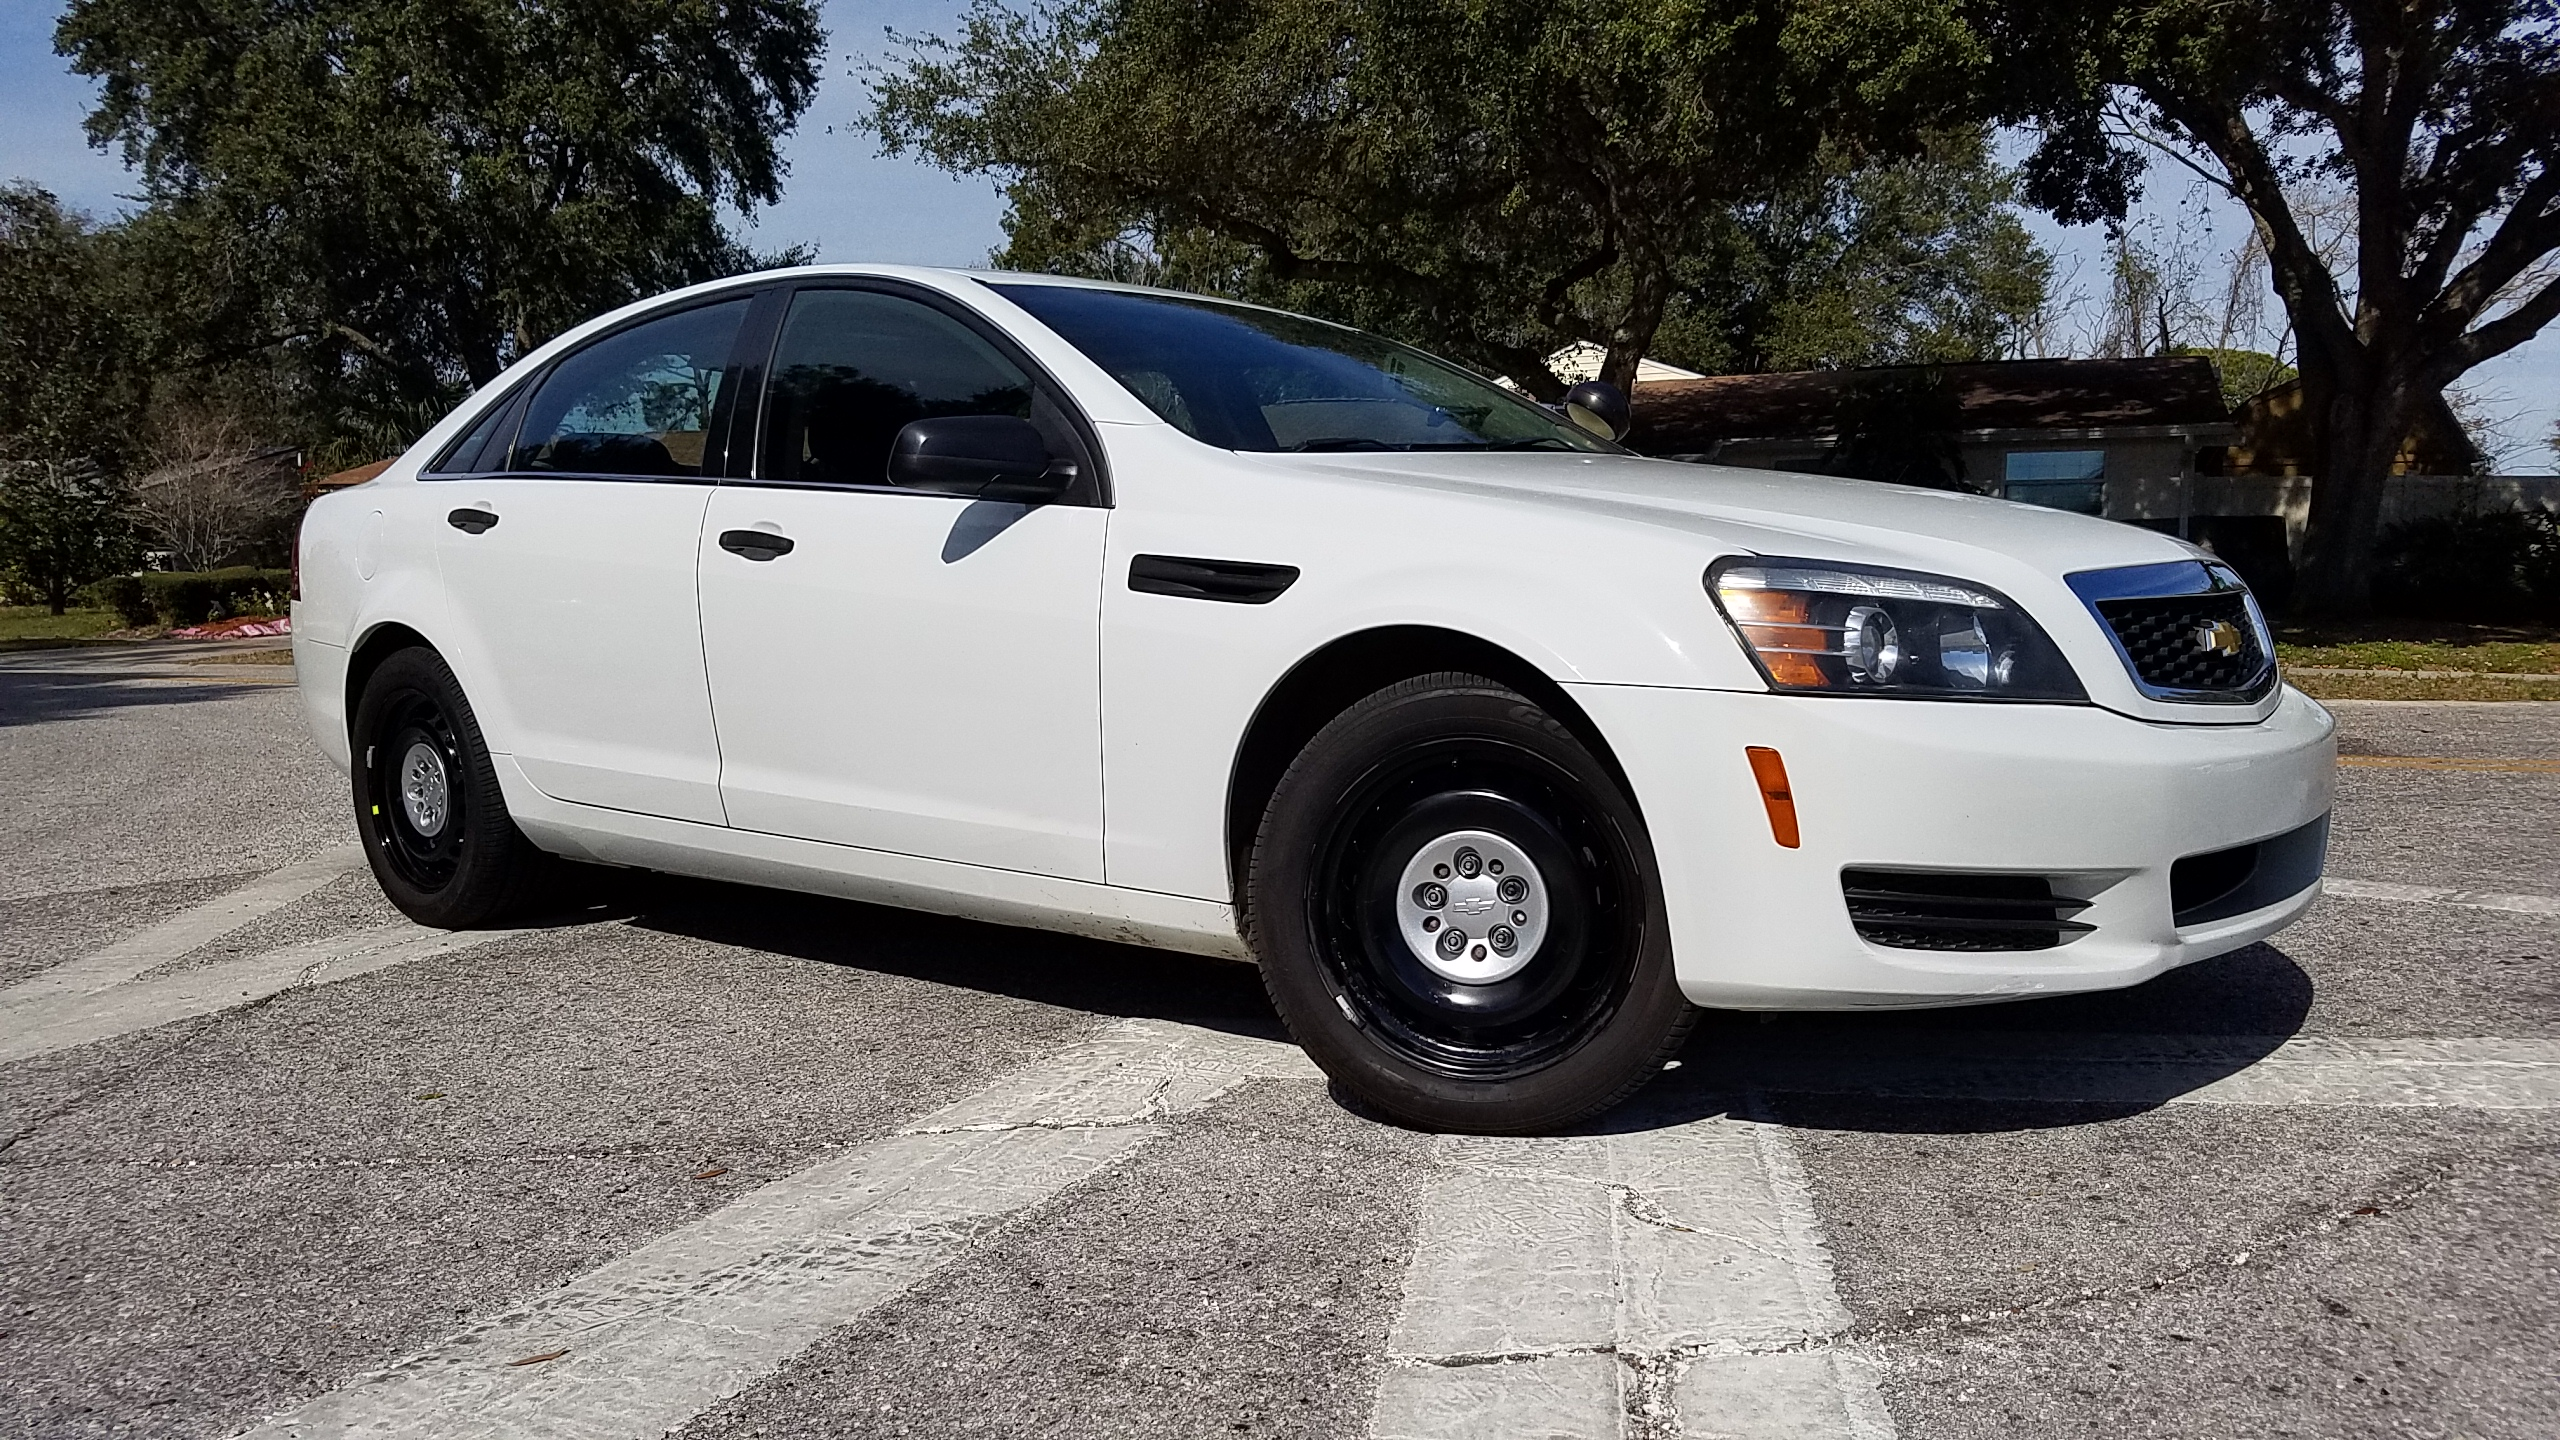 2014 Caprice PPV 6.0 Liter V8 Rear Wheel Drive - Thee Cop Shop